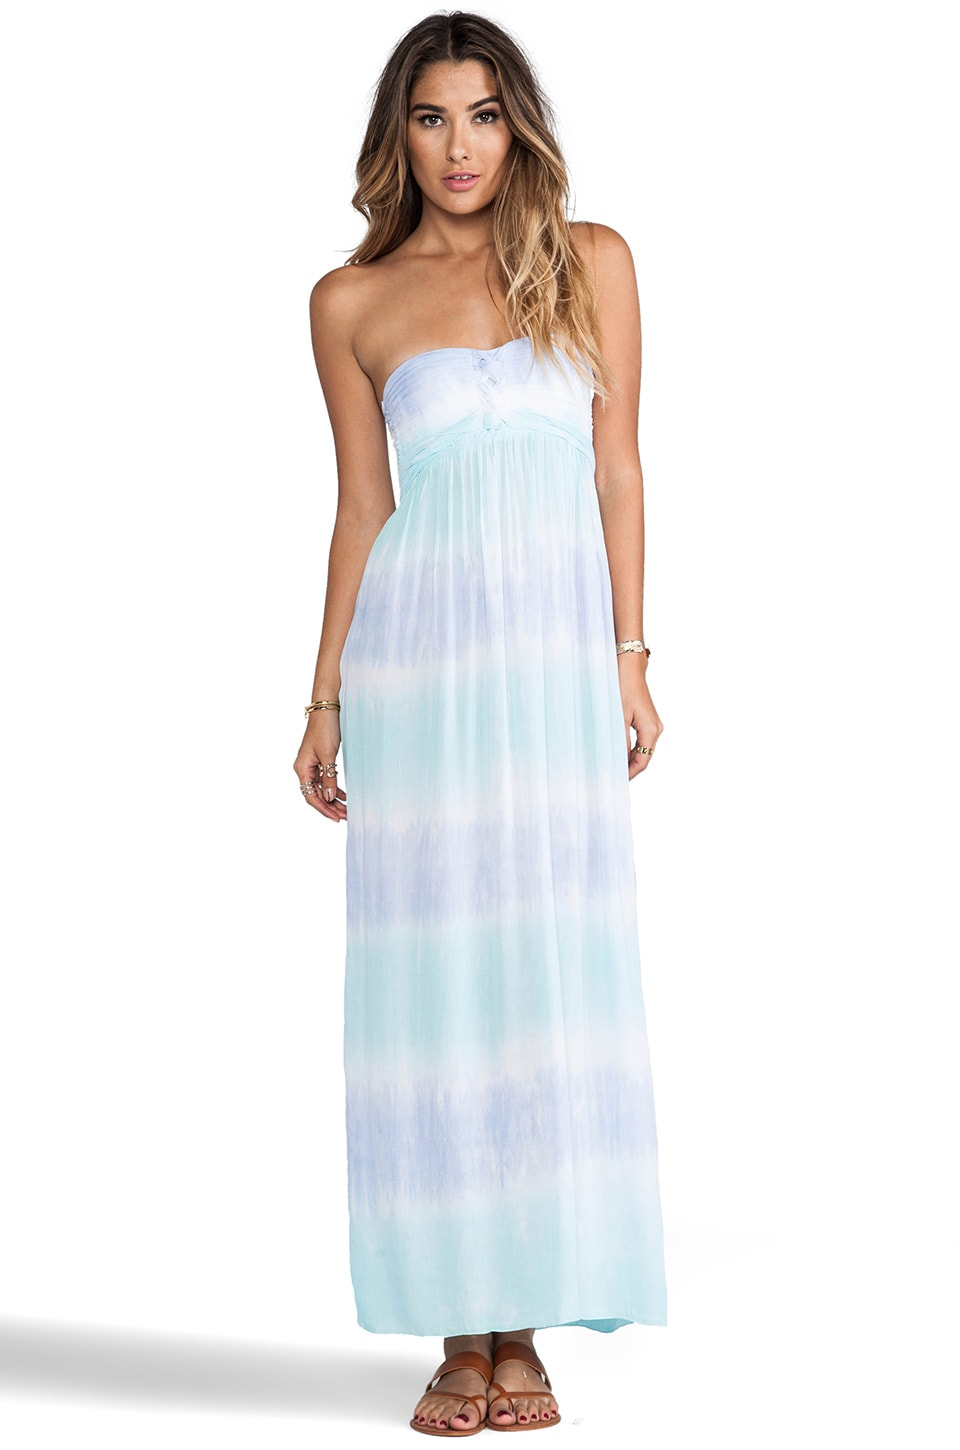 Tiare Hawaii Jasmine Maxi Dress in Blue/Teal